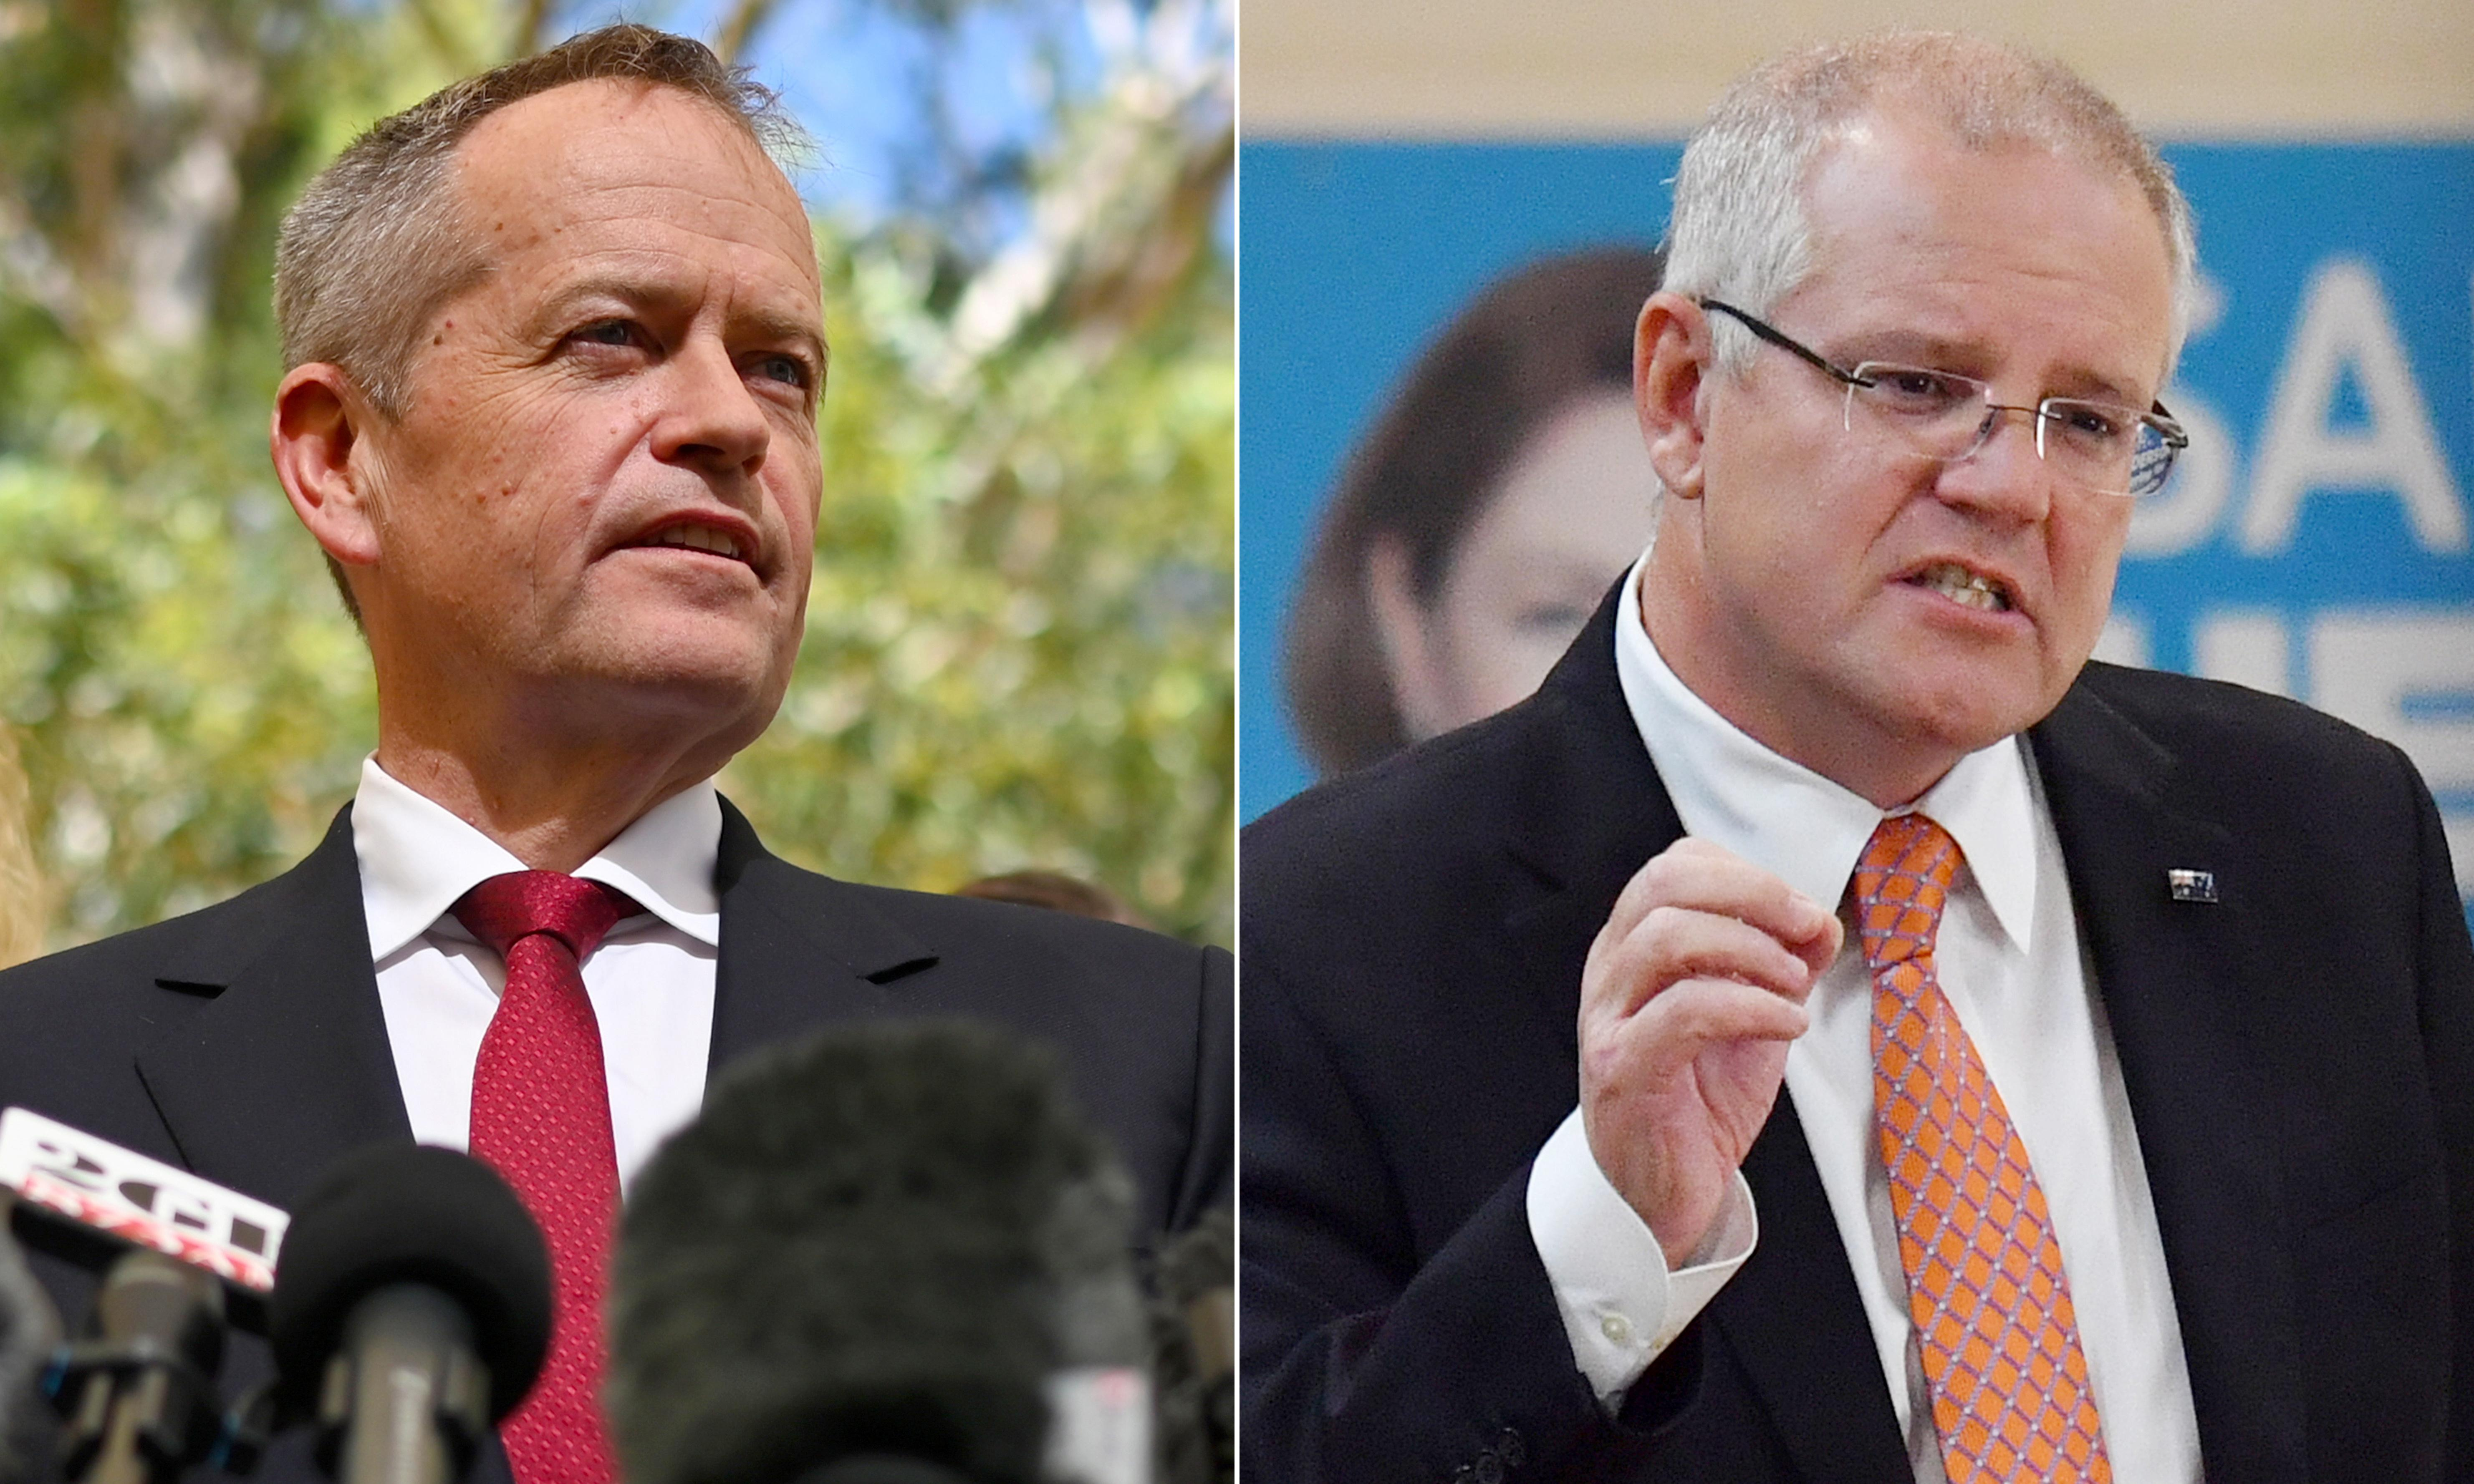 Morrison and Shorten duck questions about losing election in final TV interviews